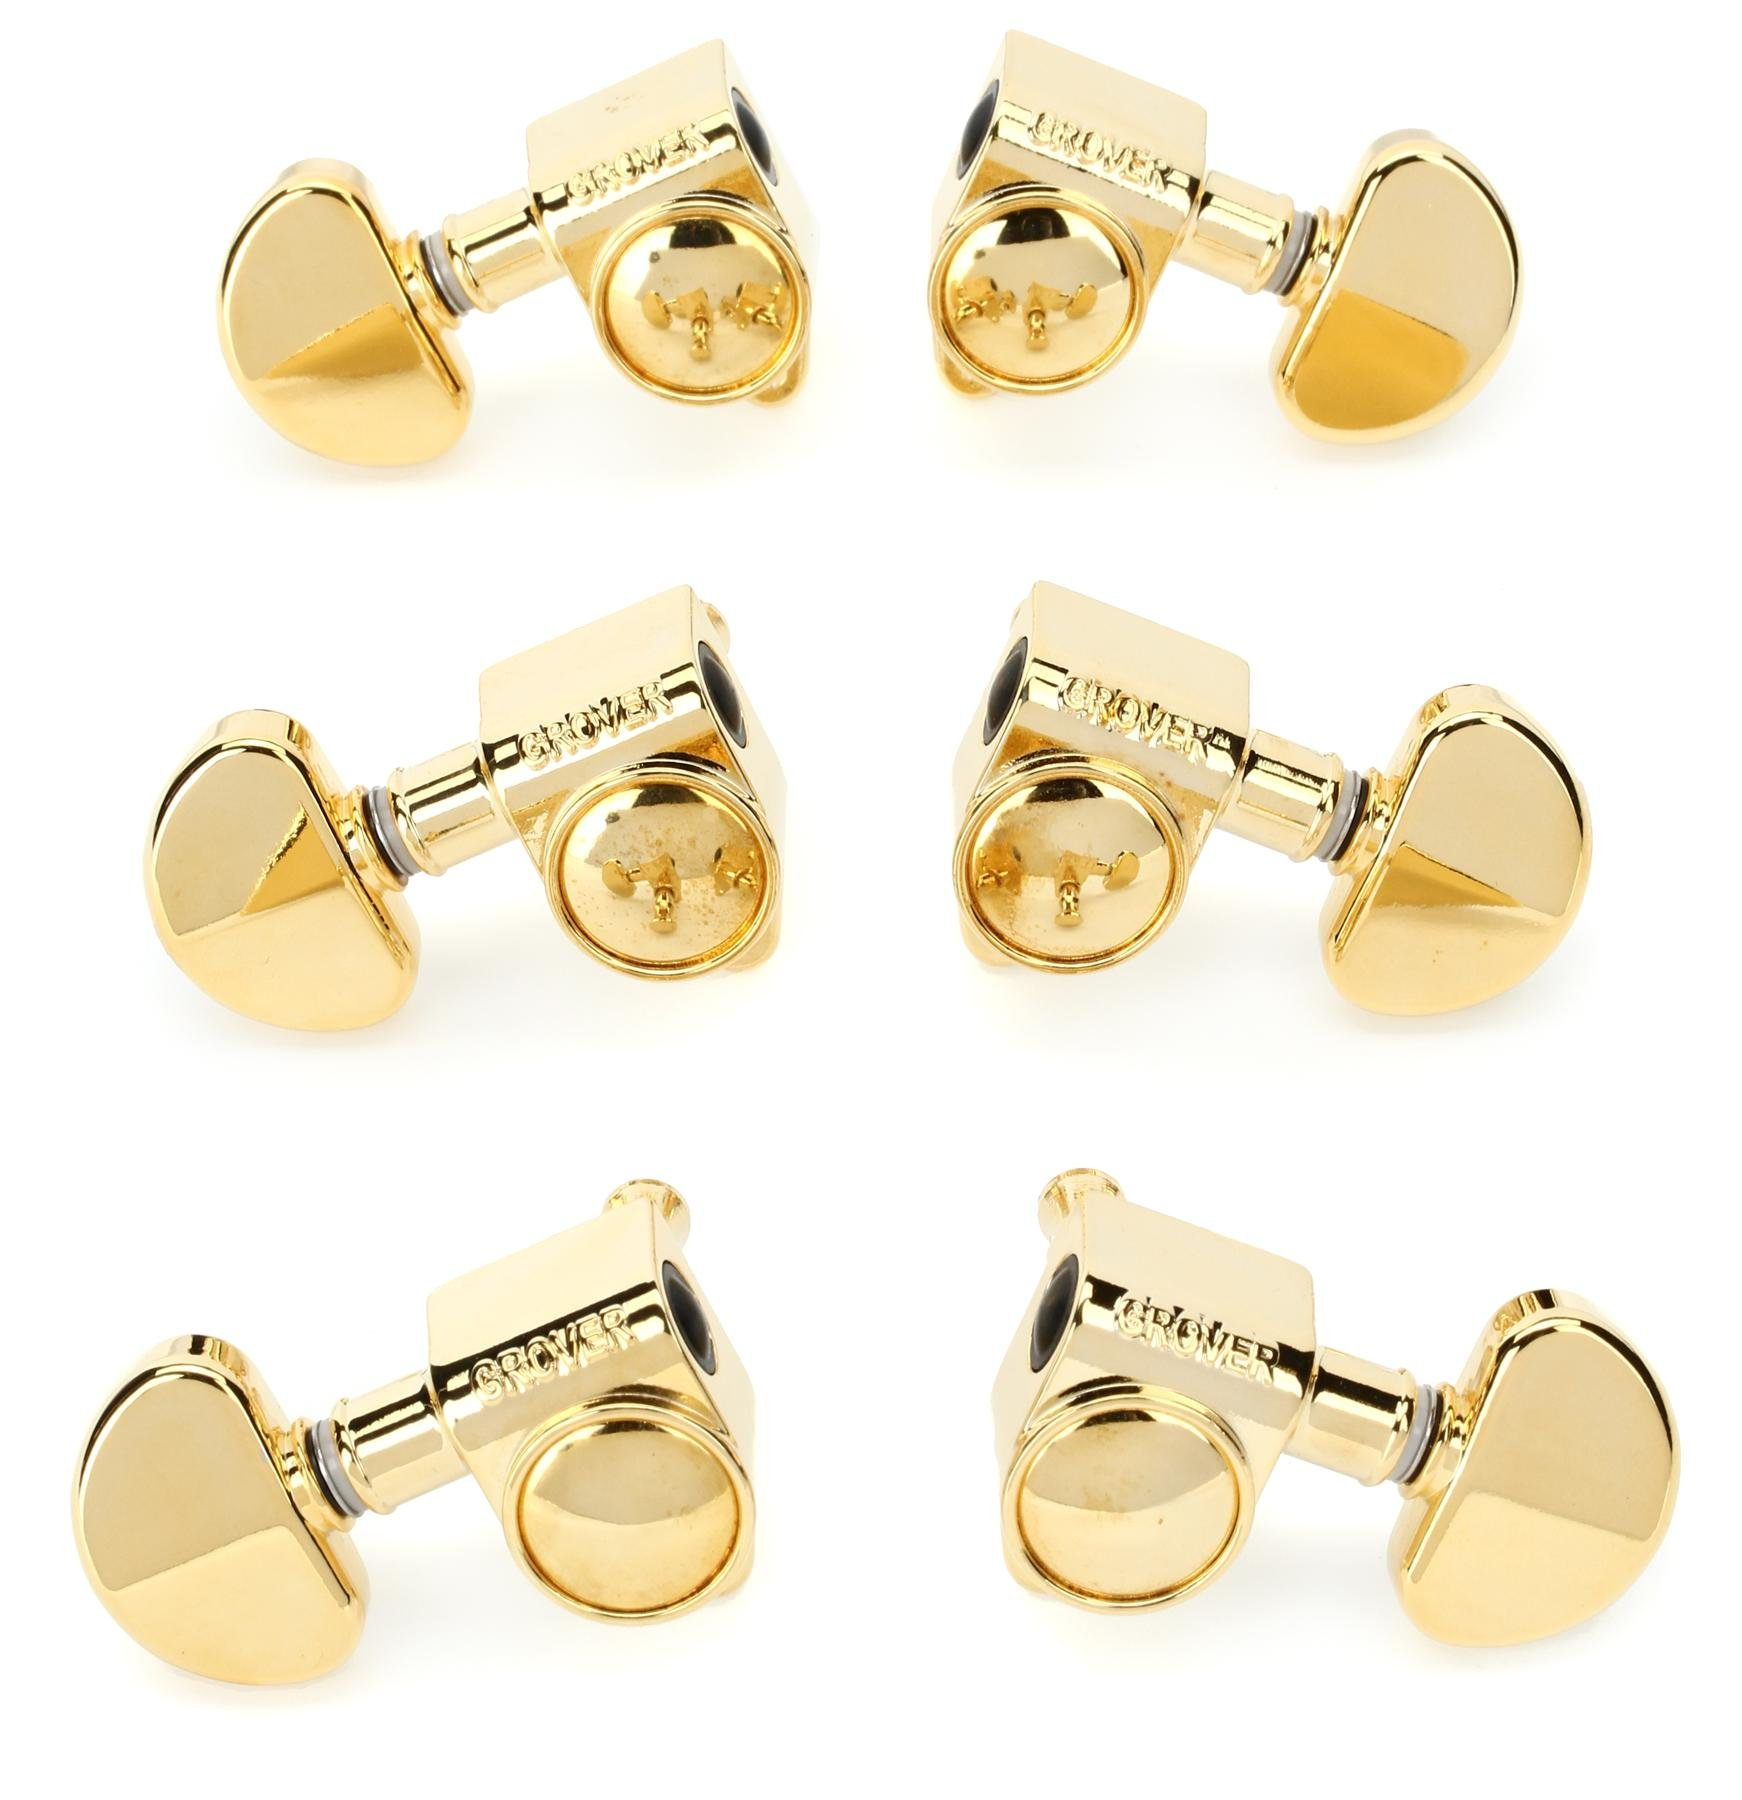 18:1 GOLD NEW Grover 102-18G Rotomatic 3X3 Tuning Keys